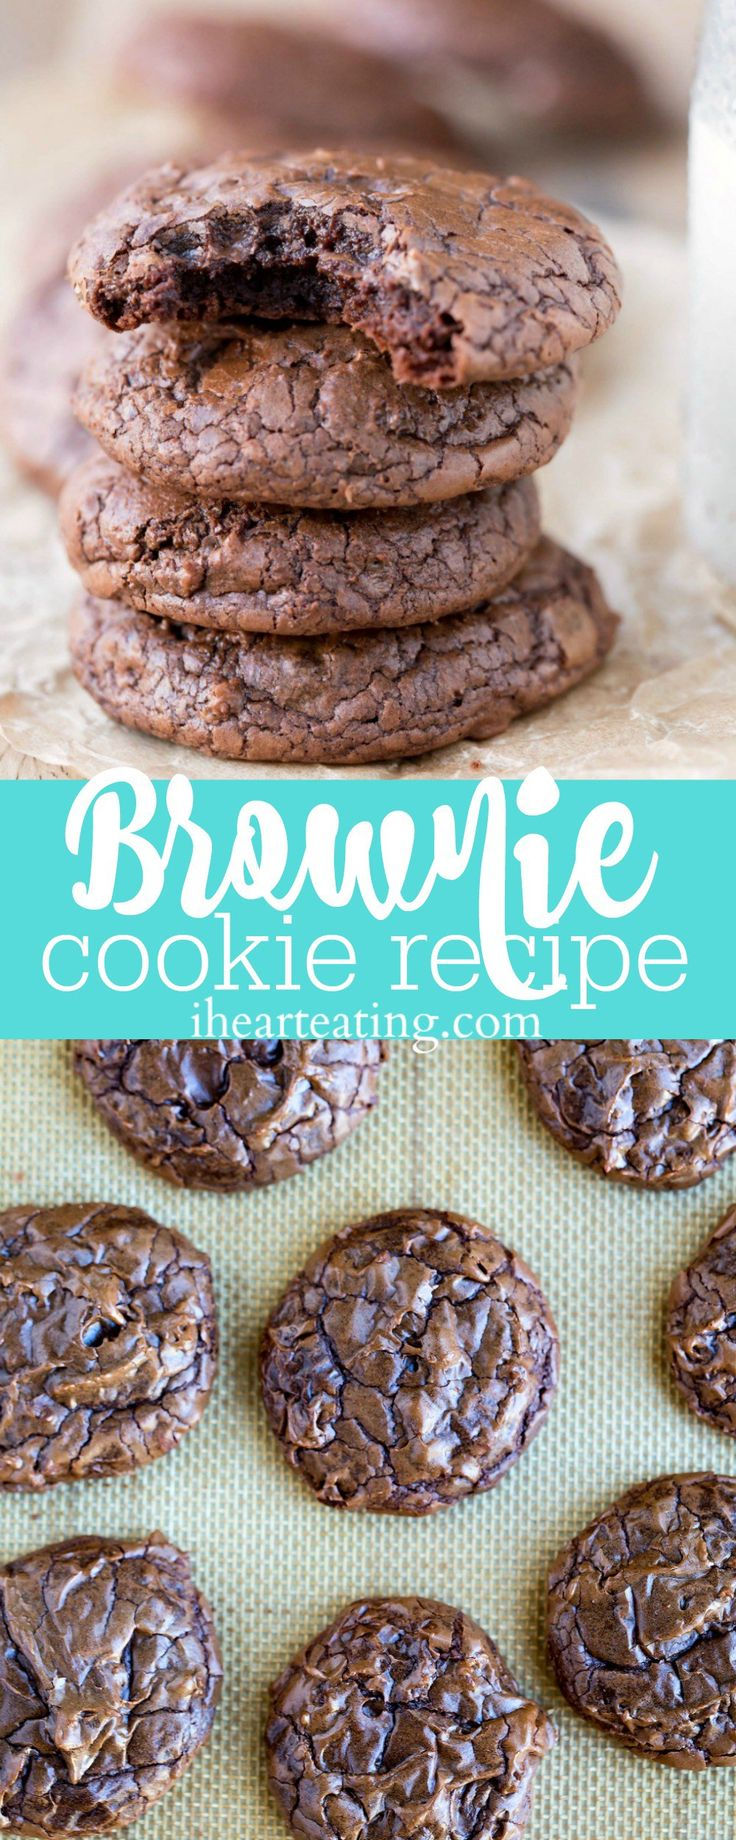 Brownie Cookie Recipe - This brownie cookie recipe is all of the good parts of a brownie- crackly crust, fudgy middles, chewy edges, & intense chocolate flavor -in one cookie